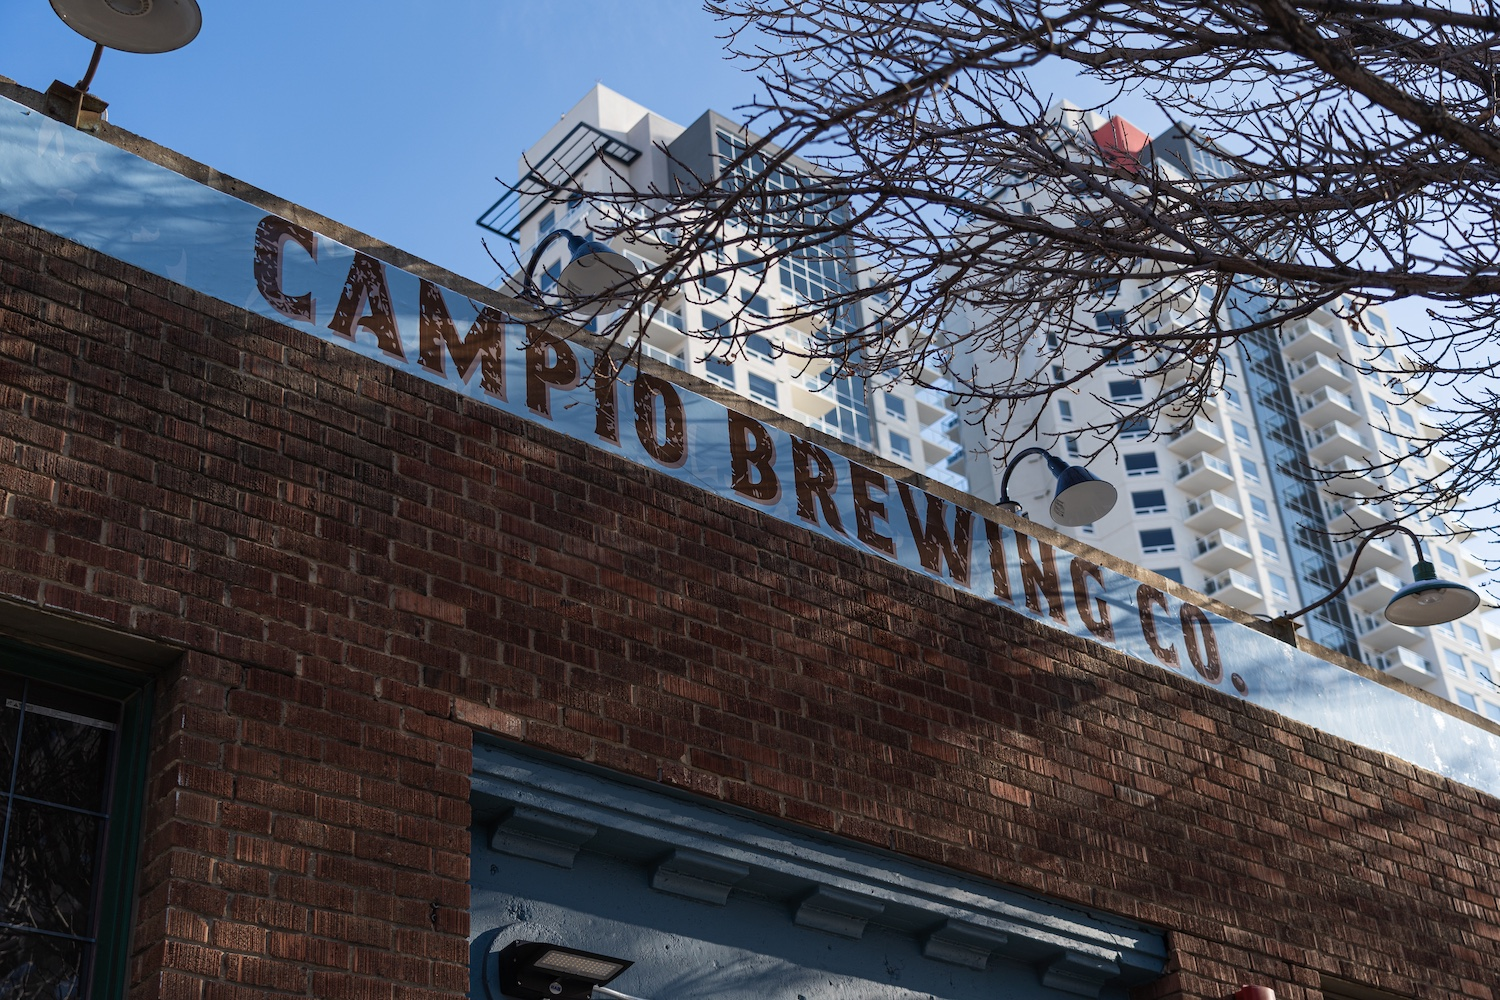 campio brewing